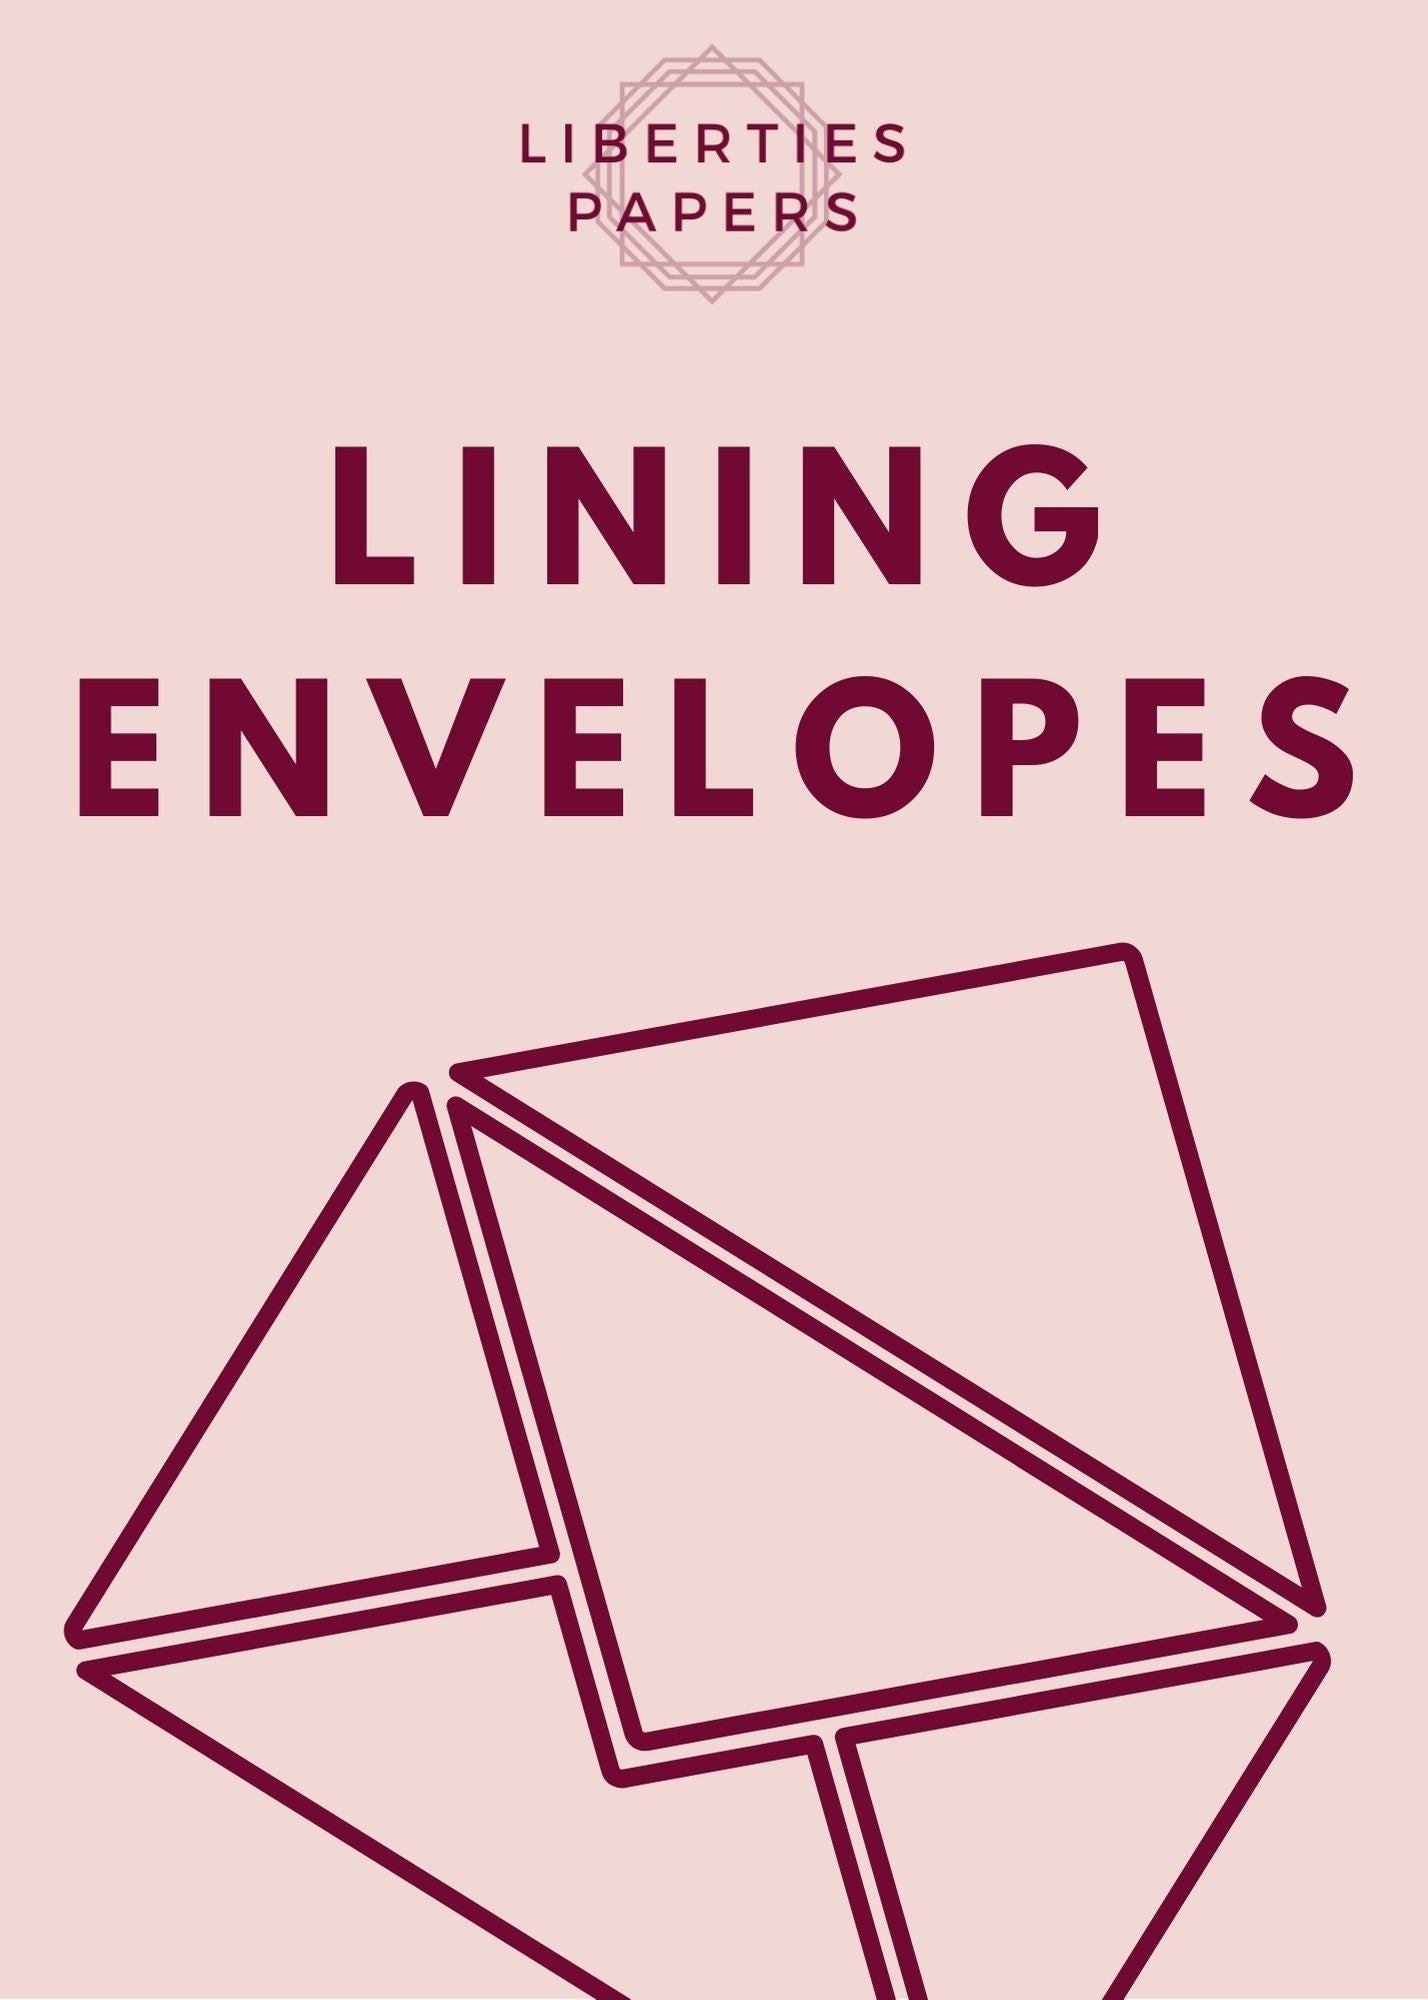 Envelope Lining Service - Liberties Papers